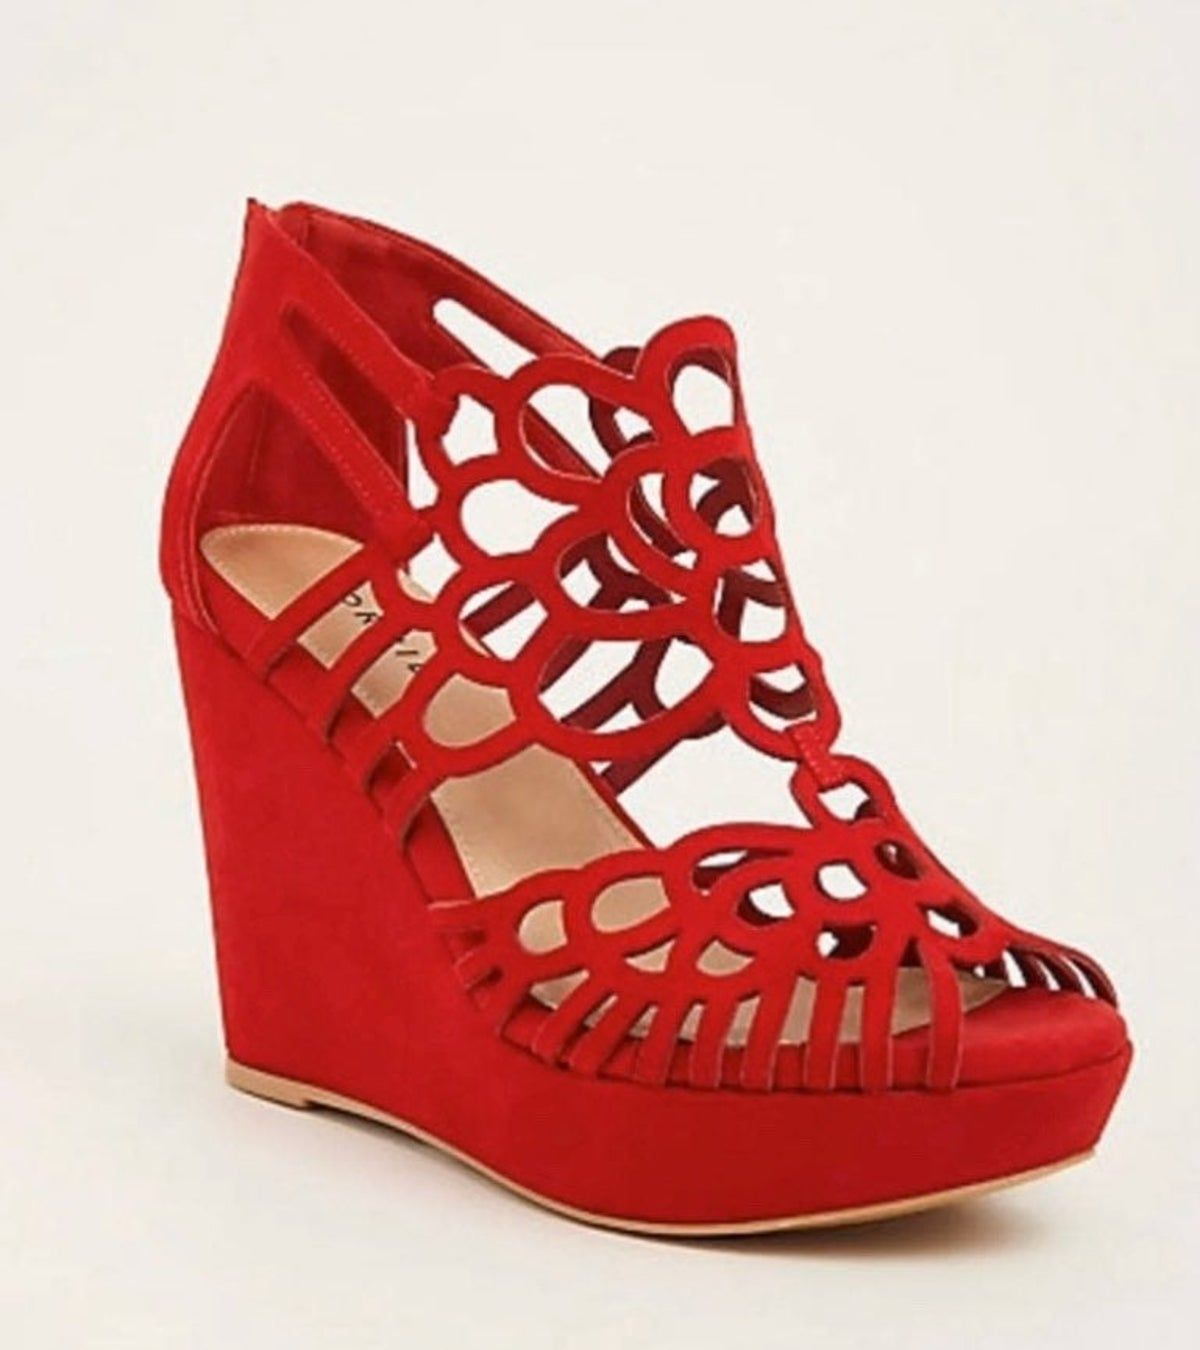 Red wedge shoes, Wedges shoes outfit